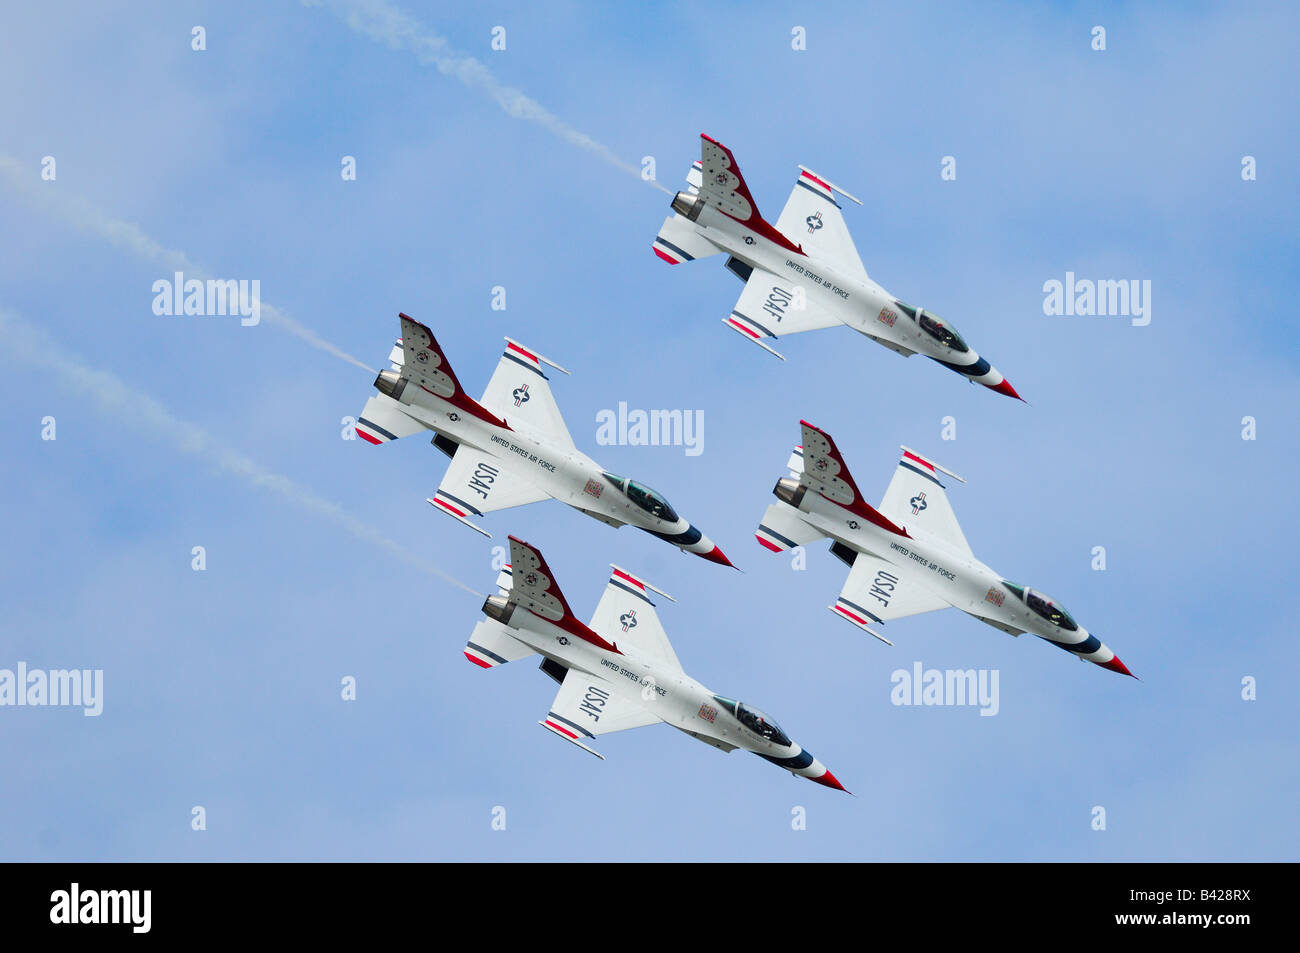 F-16 jet fighter of the aerobatic team Thunderbirds in flight at Elmendorf Air Force Base - Stock Image